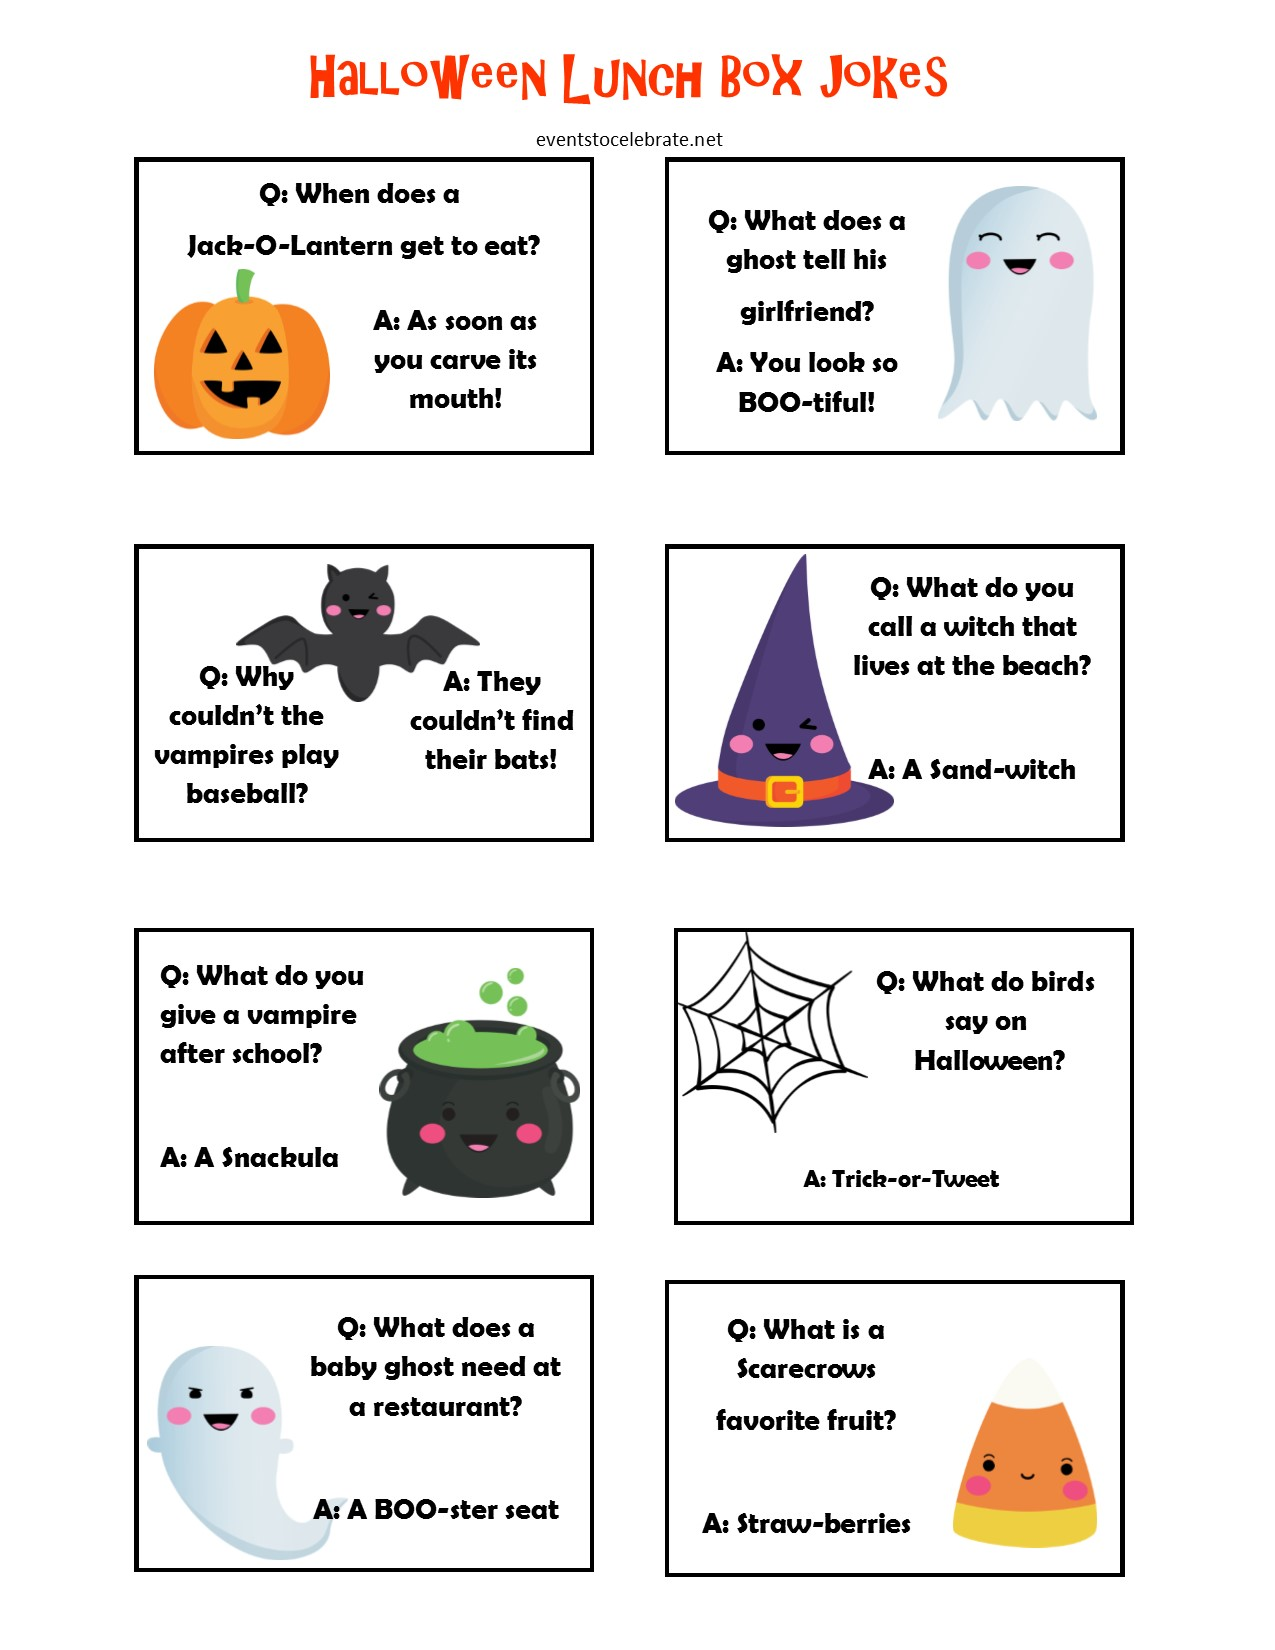 photograph about Lunch Box Jokes Printable identify Halloween Lunch Box Jokes -